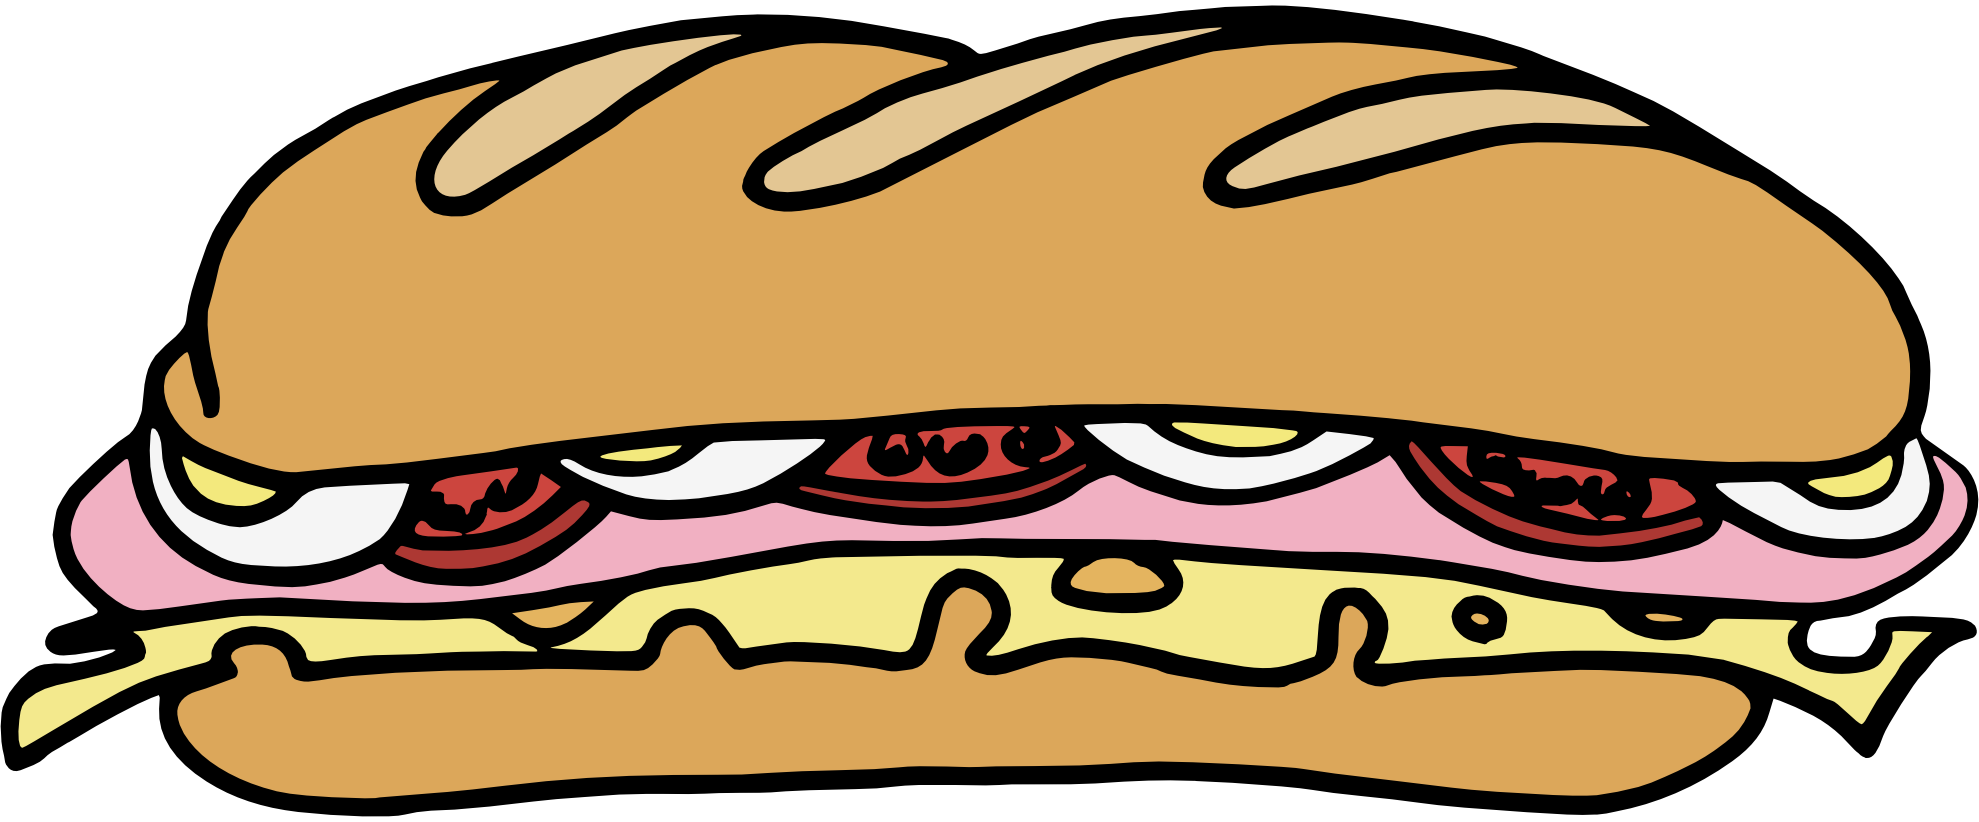 1979x822 Drawn Sandwich Cheese Sandwich